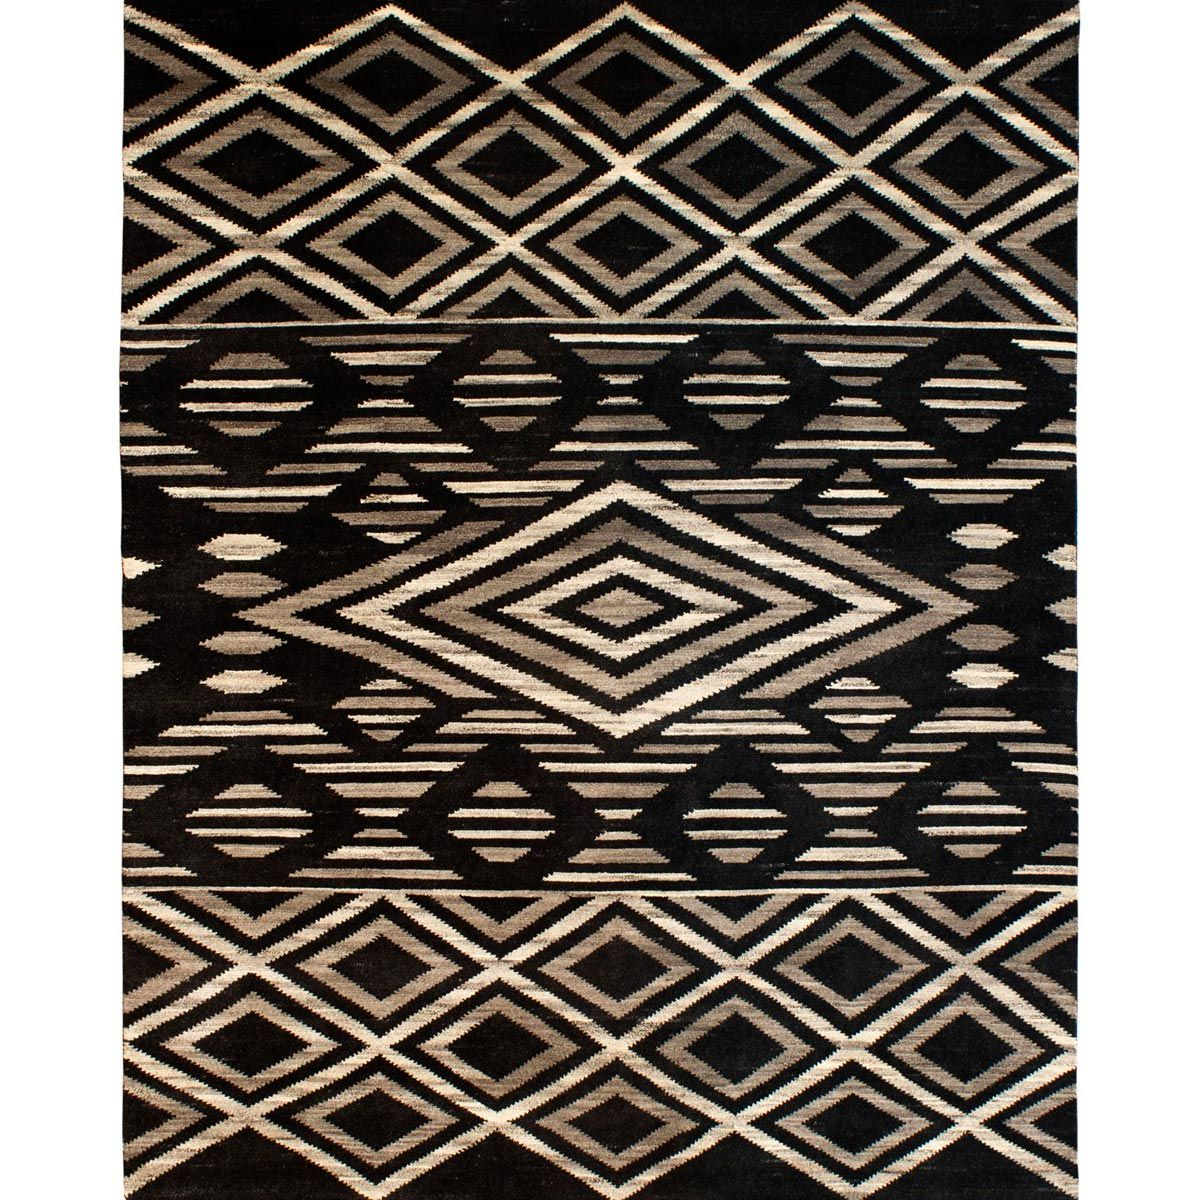 Midnight Diamonds Rug - 2 x 3